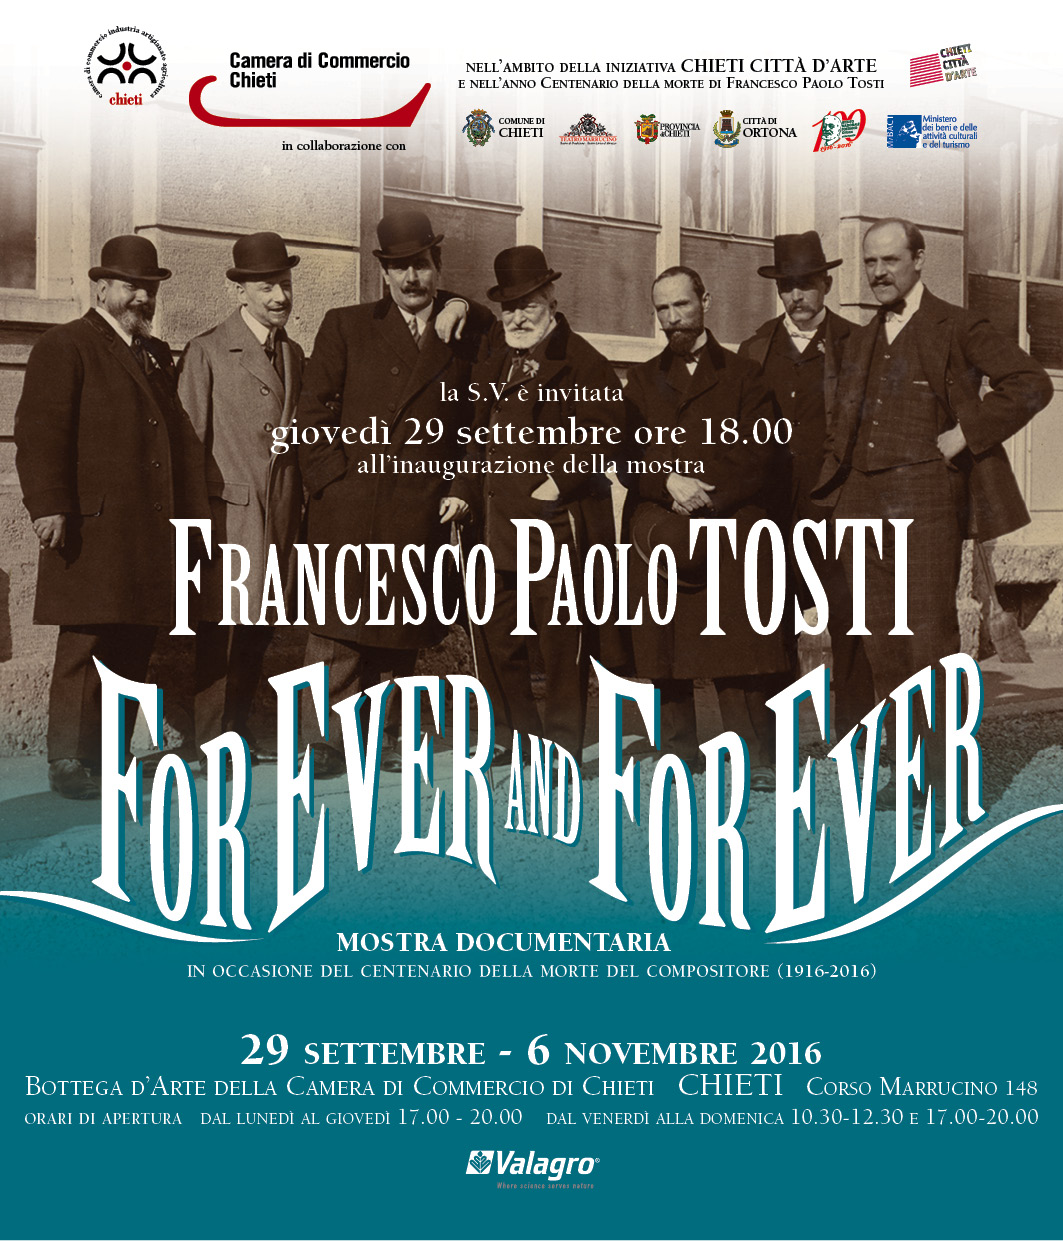 "A Chieti la mostra "" for ever and for ever"""